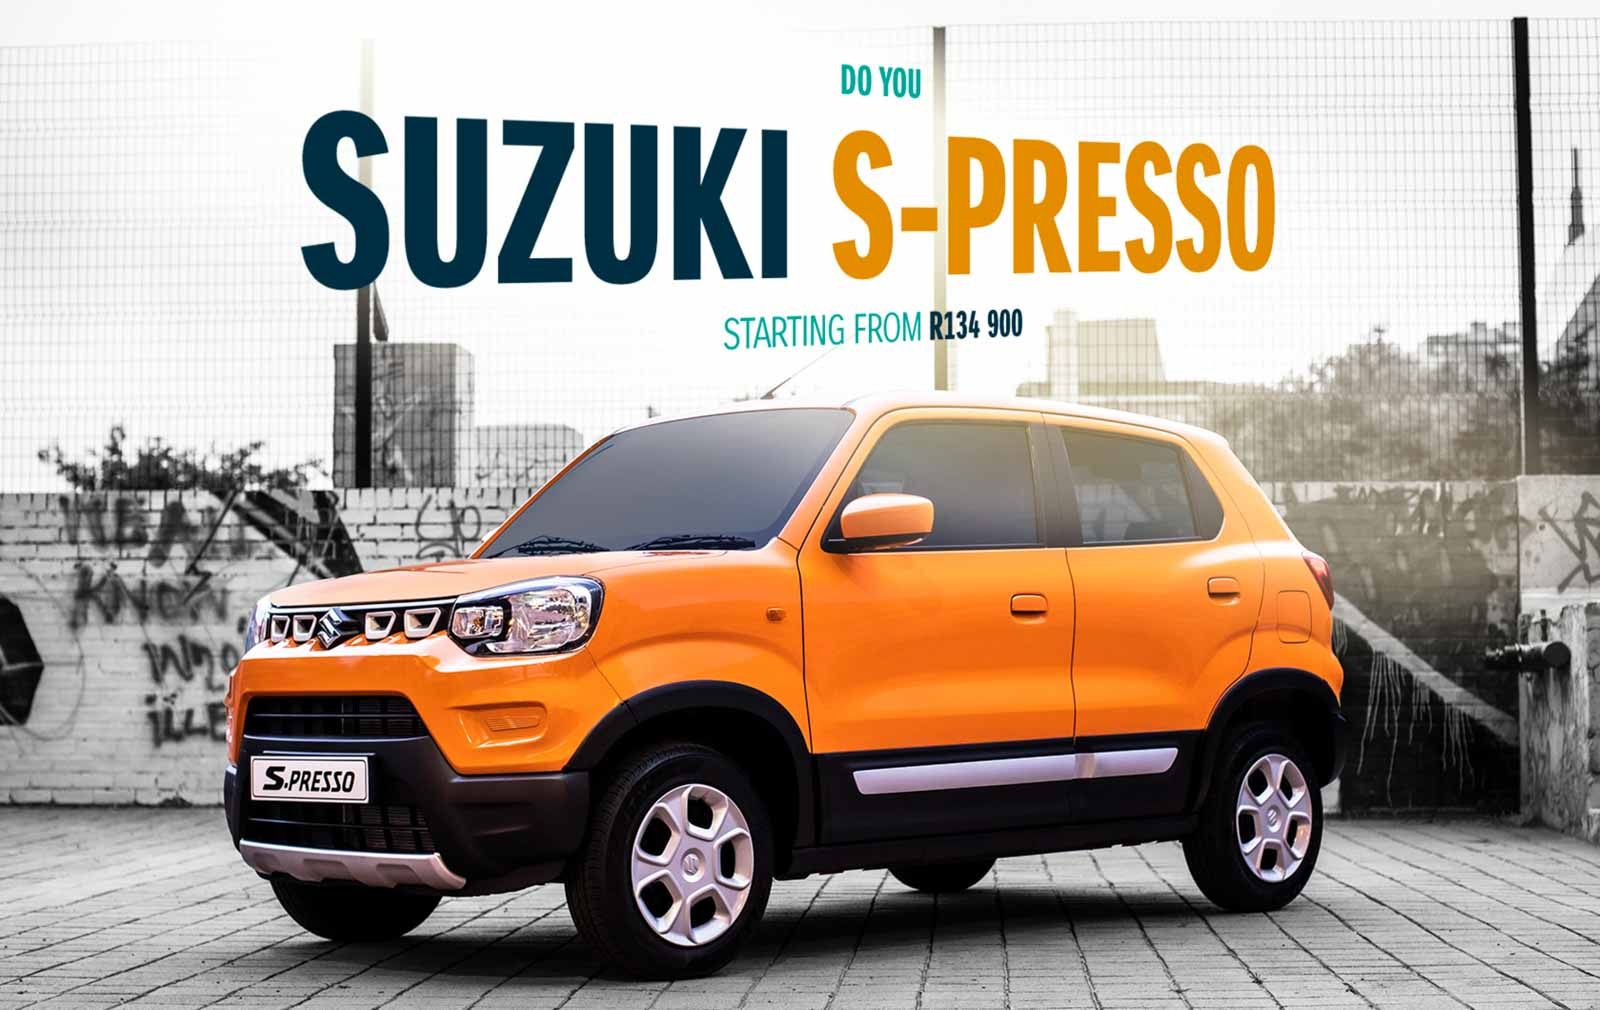 Made-In-India Suzuki S-Presso Launched In South Africa